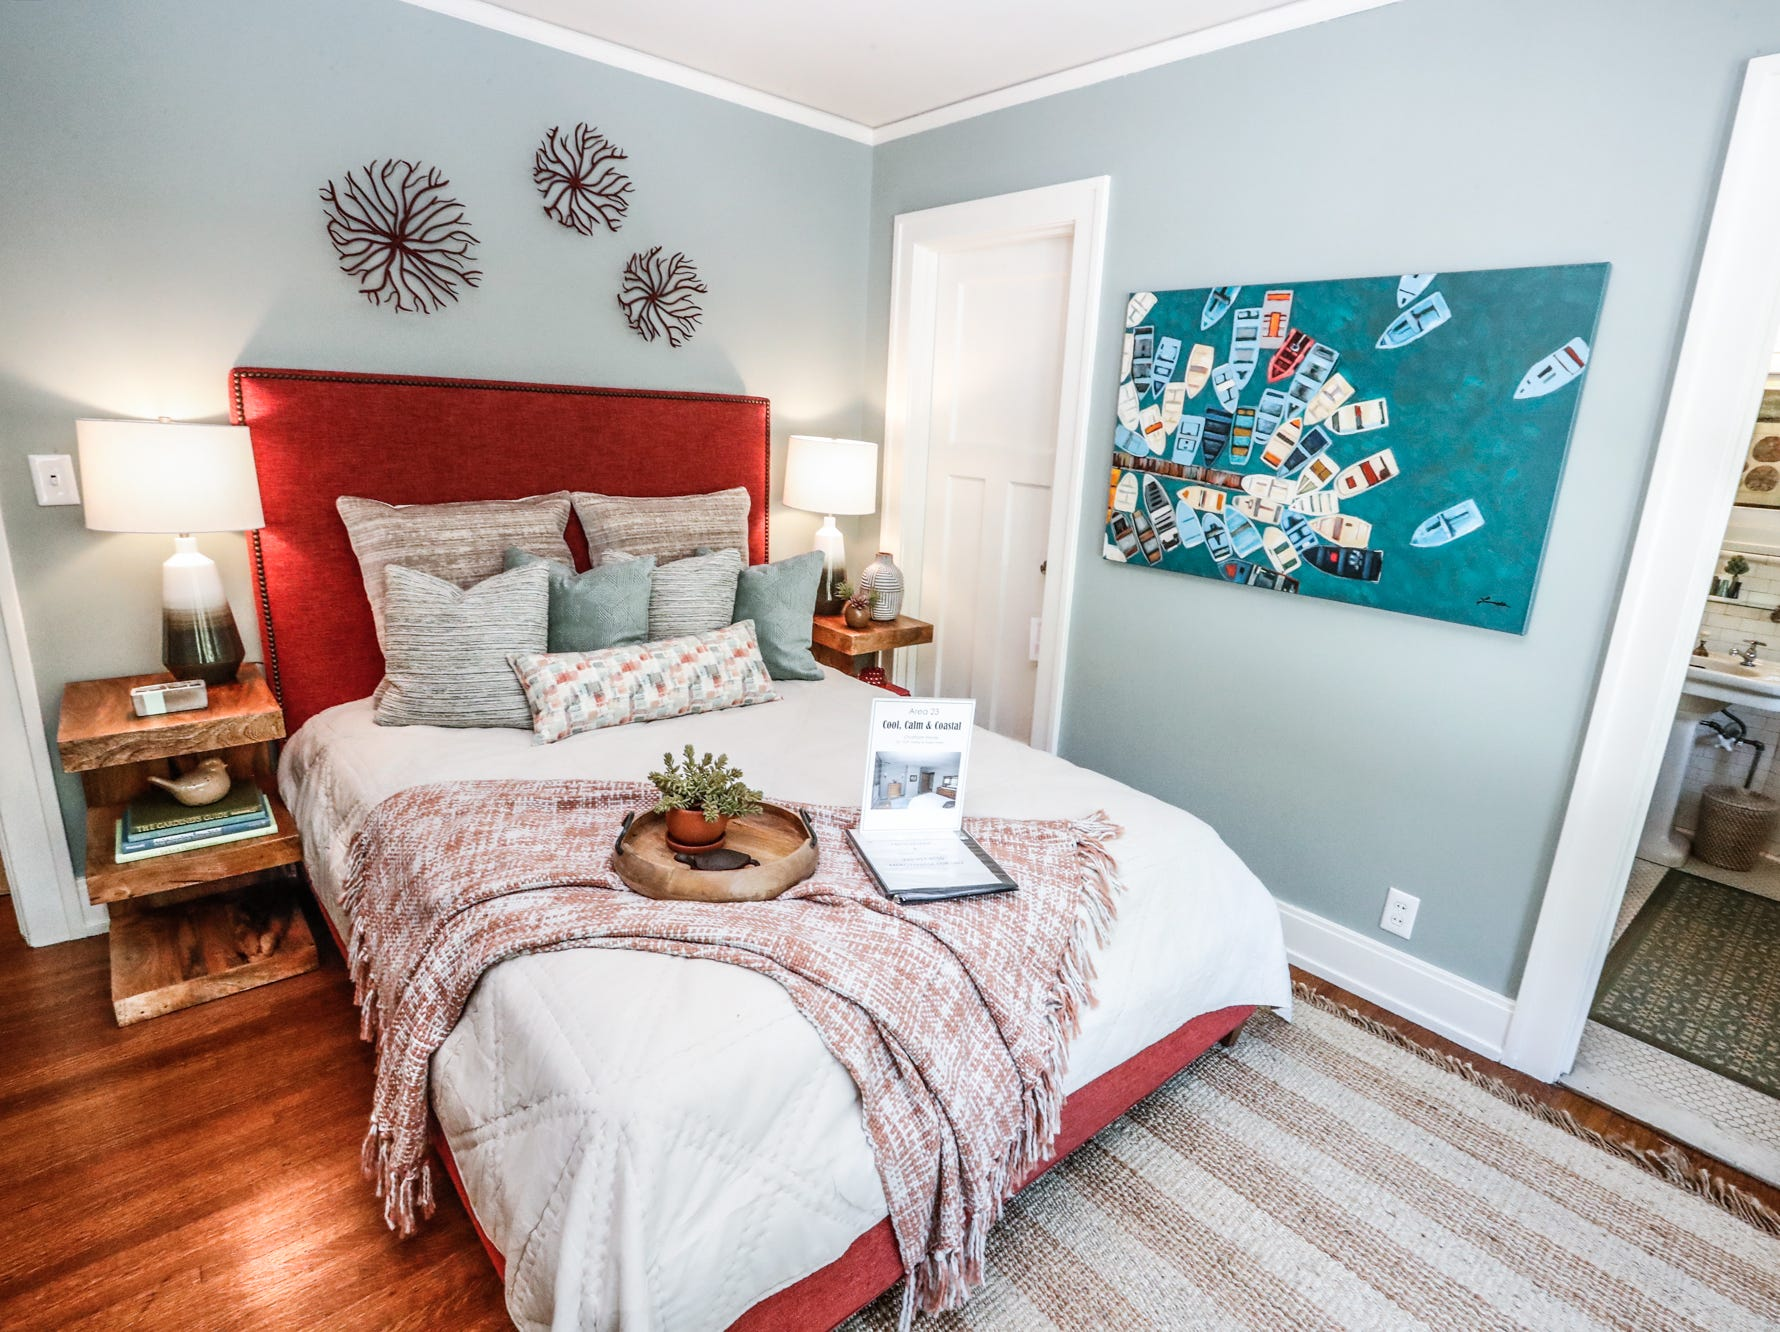 """The """"Cool, Calm, and Coastal"""" room, designed by Faith Felder and Hope Harsin, of Chatham Home, inside the 58th annual St. Margaret's Hospital Guild Decorators' Show House and Gardens, located at 4160 Washington Blvd., Indianapolis, on Wednesday, May 8, 2019."""